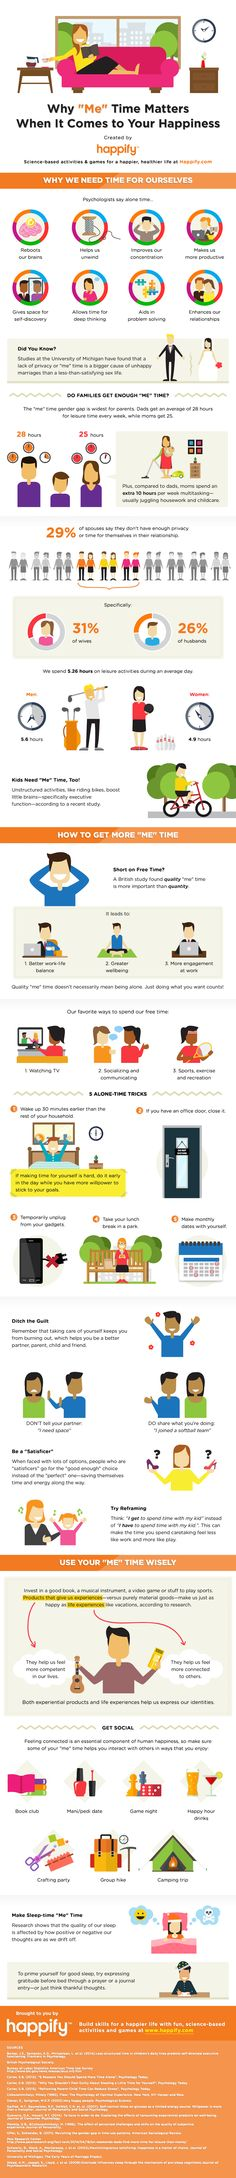 """Why """"Me Time"""" Is So Important For Happiness (Infographic) - mindbodygreen.com"""